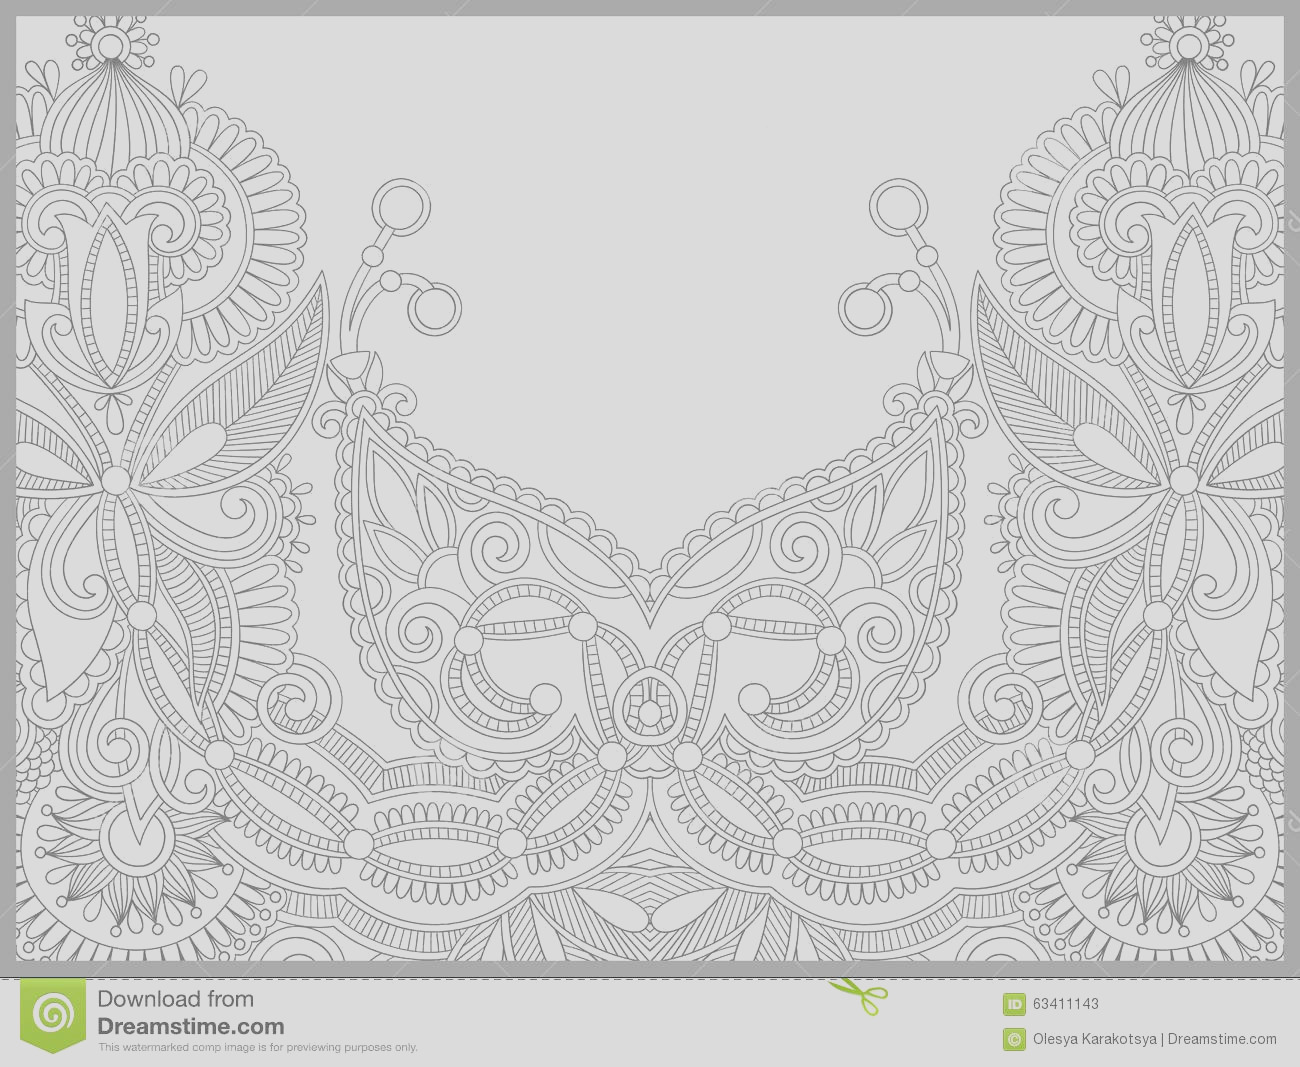 stock illustration unique coloring book page adults flower paisley design joy to older children adult colorists who like line art image